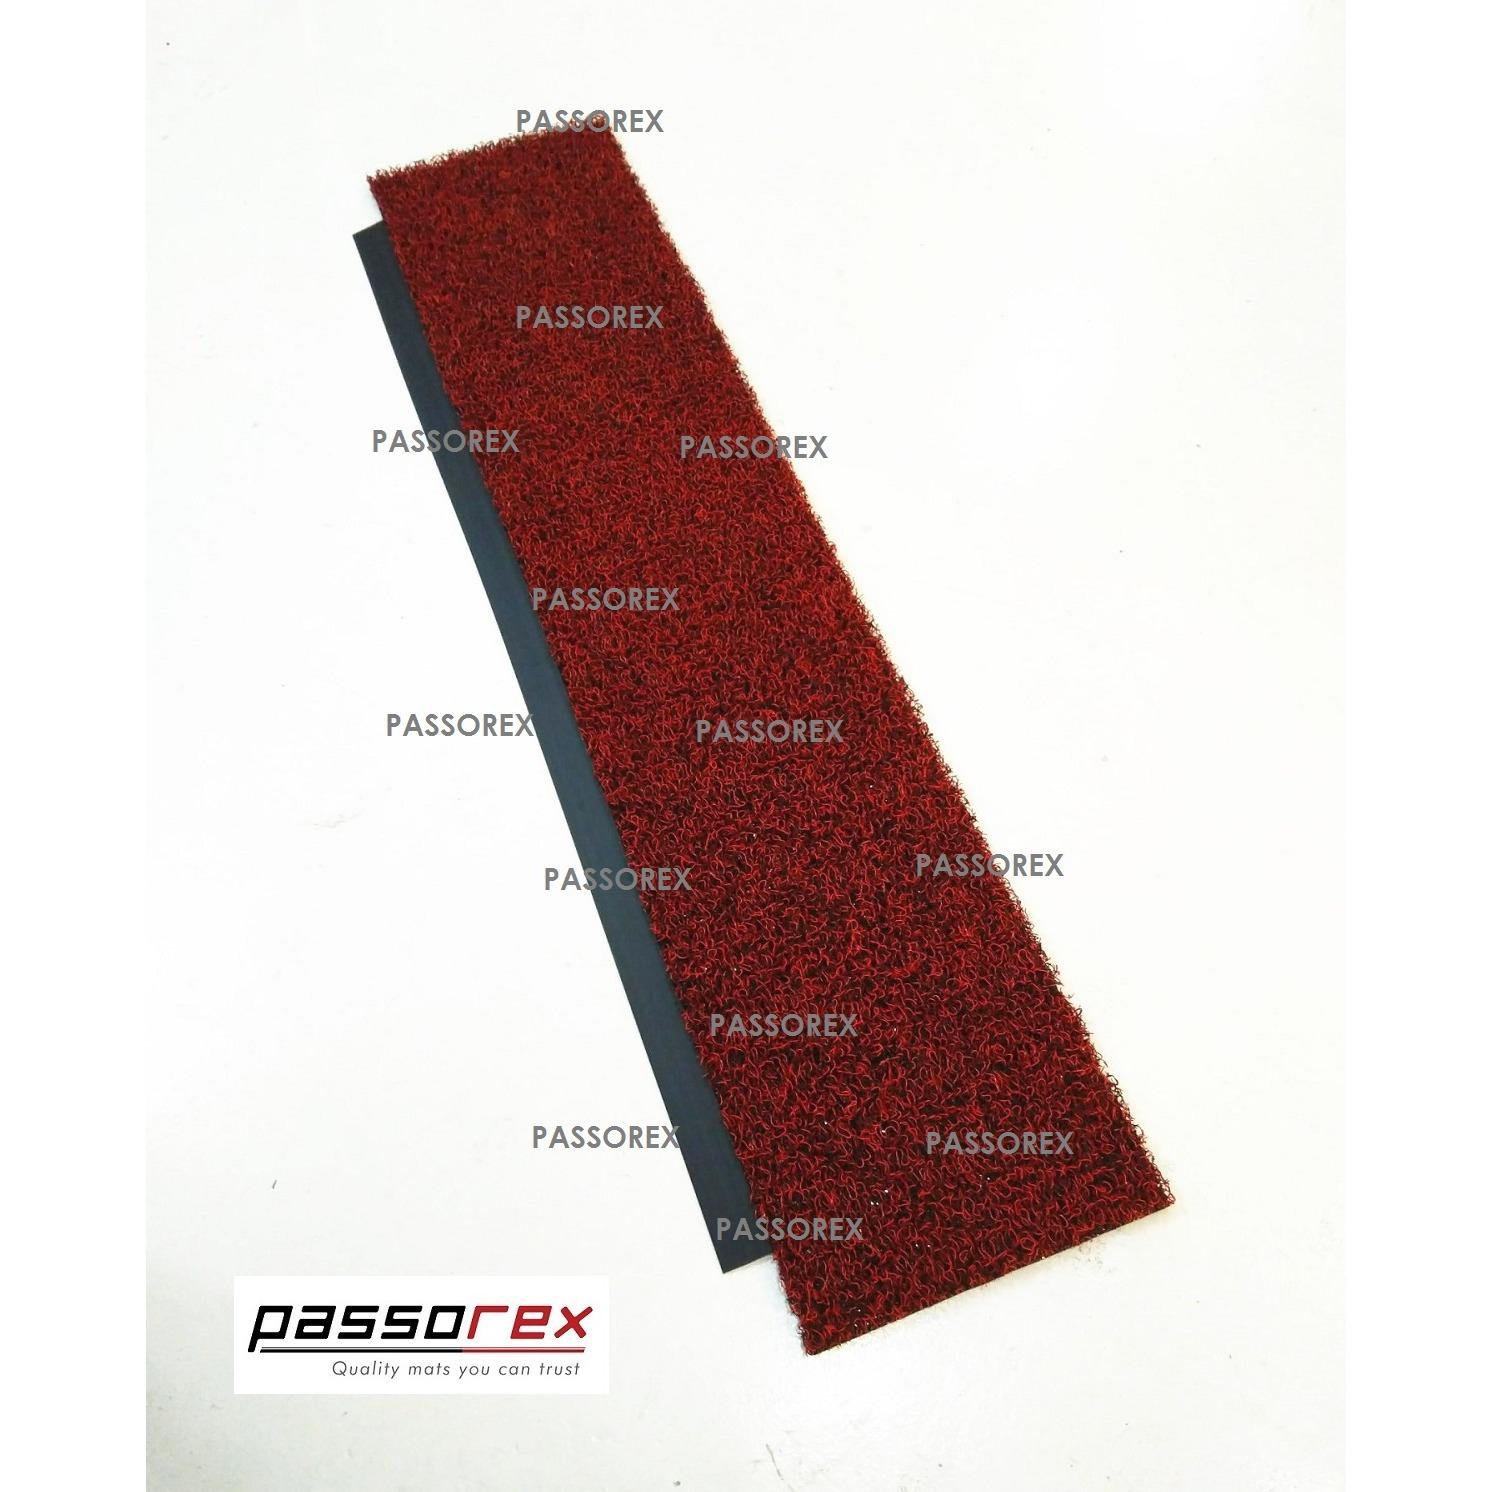 Discounted Passorex Door Gap Coil Mat With Rubber Edge Prxdgme1202913 Black Red